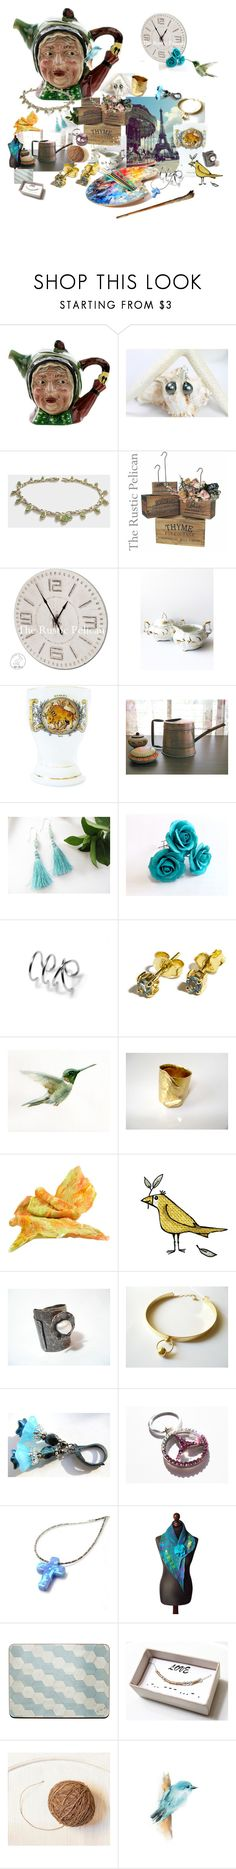 """Thank you! Treasury"" by treasury ❤ liked on Polyvore featuring Gamp, New, sunflower, Nikush and Treasury"